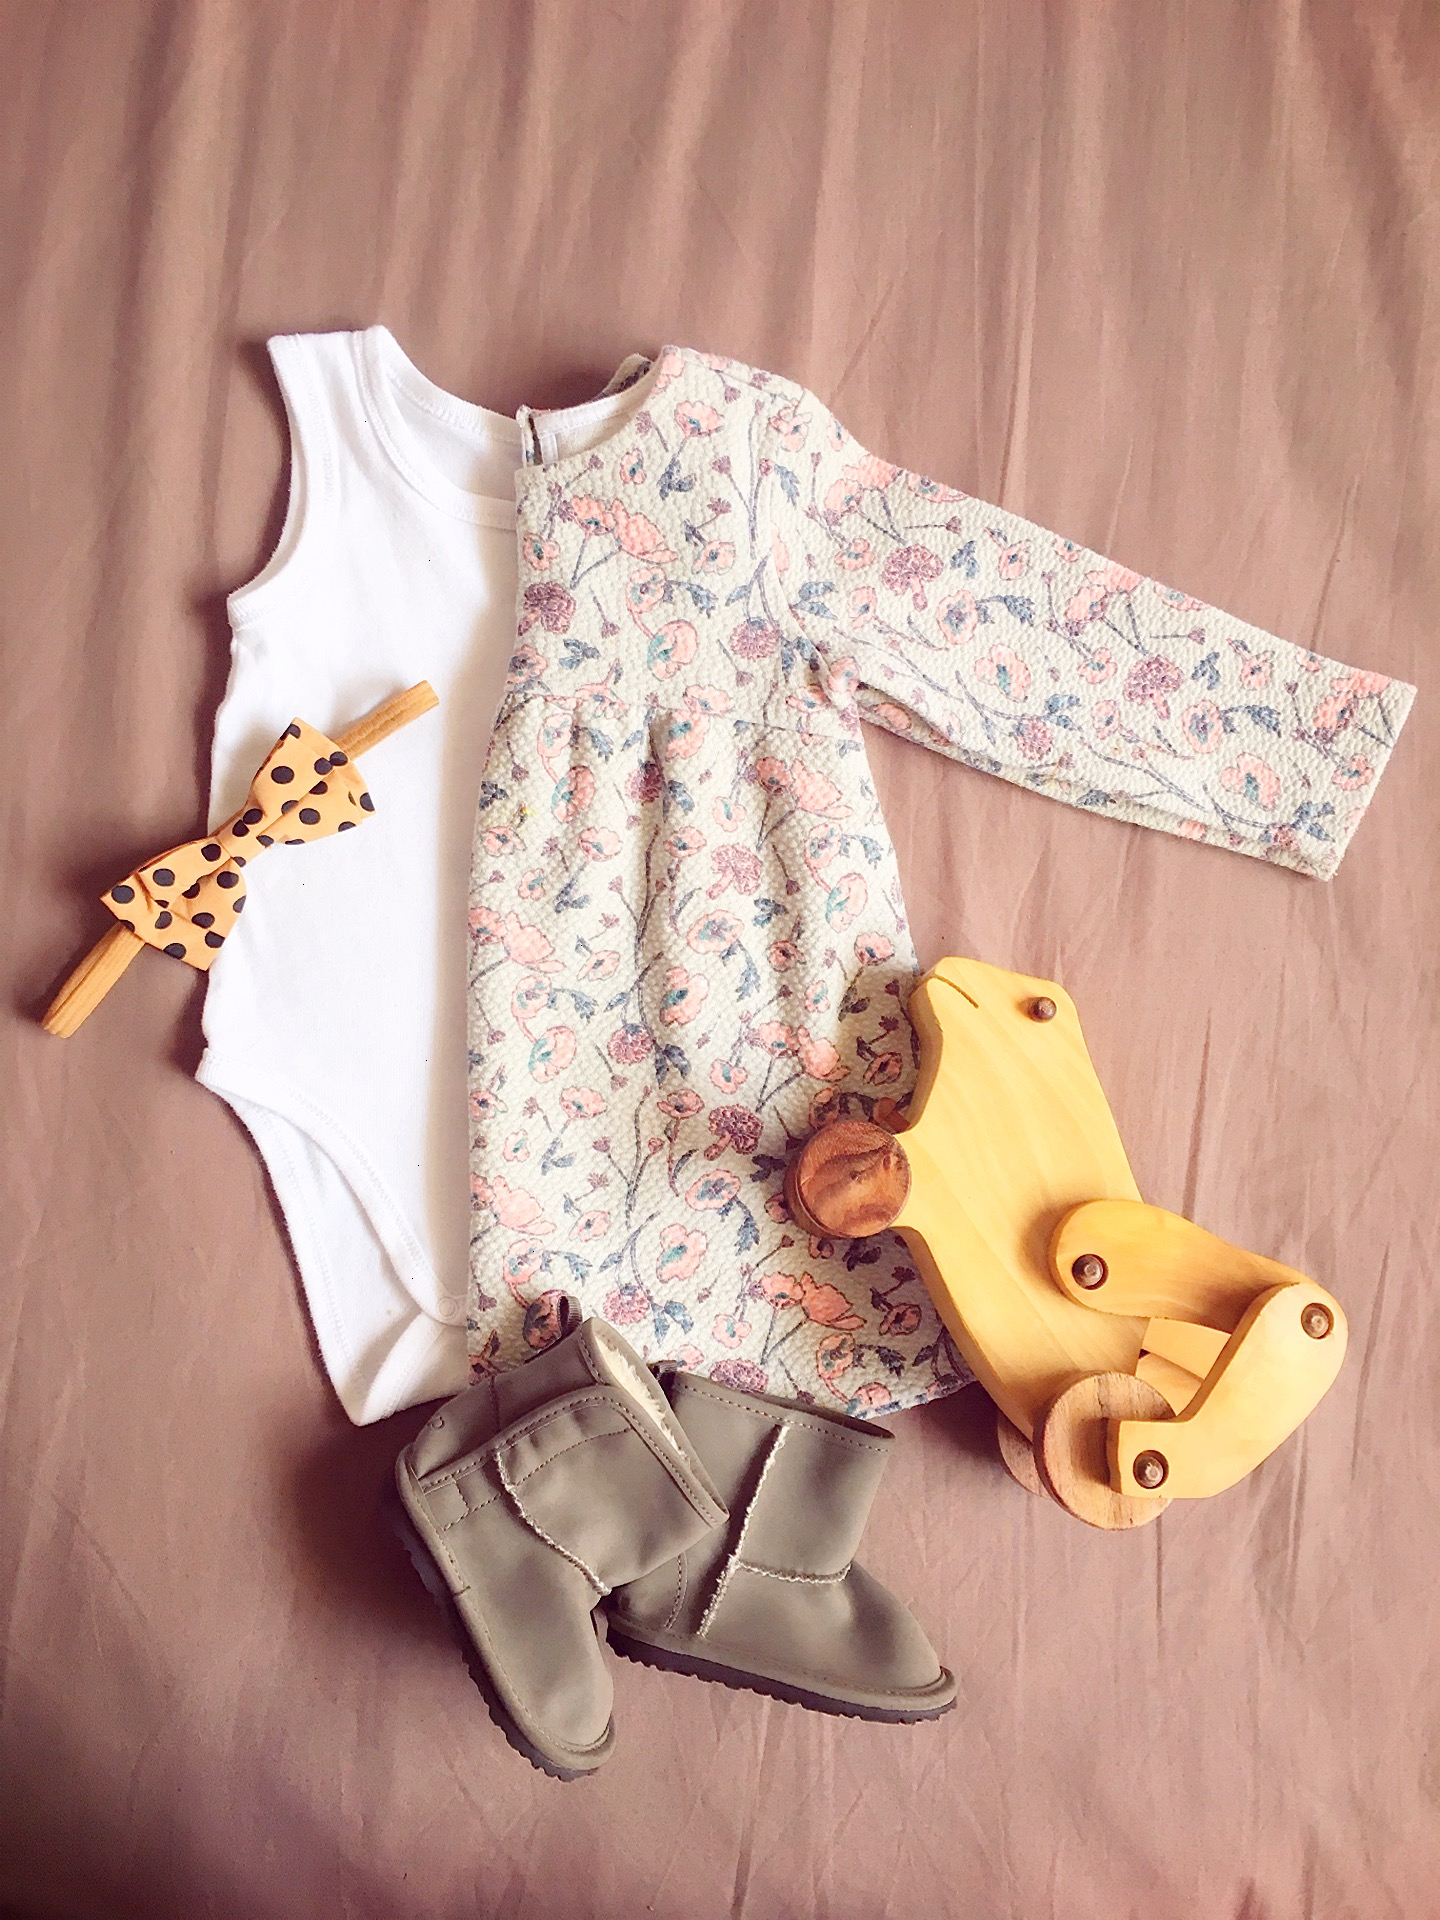 Dressing tips for babies